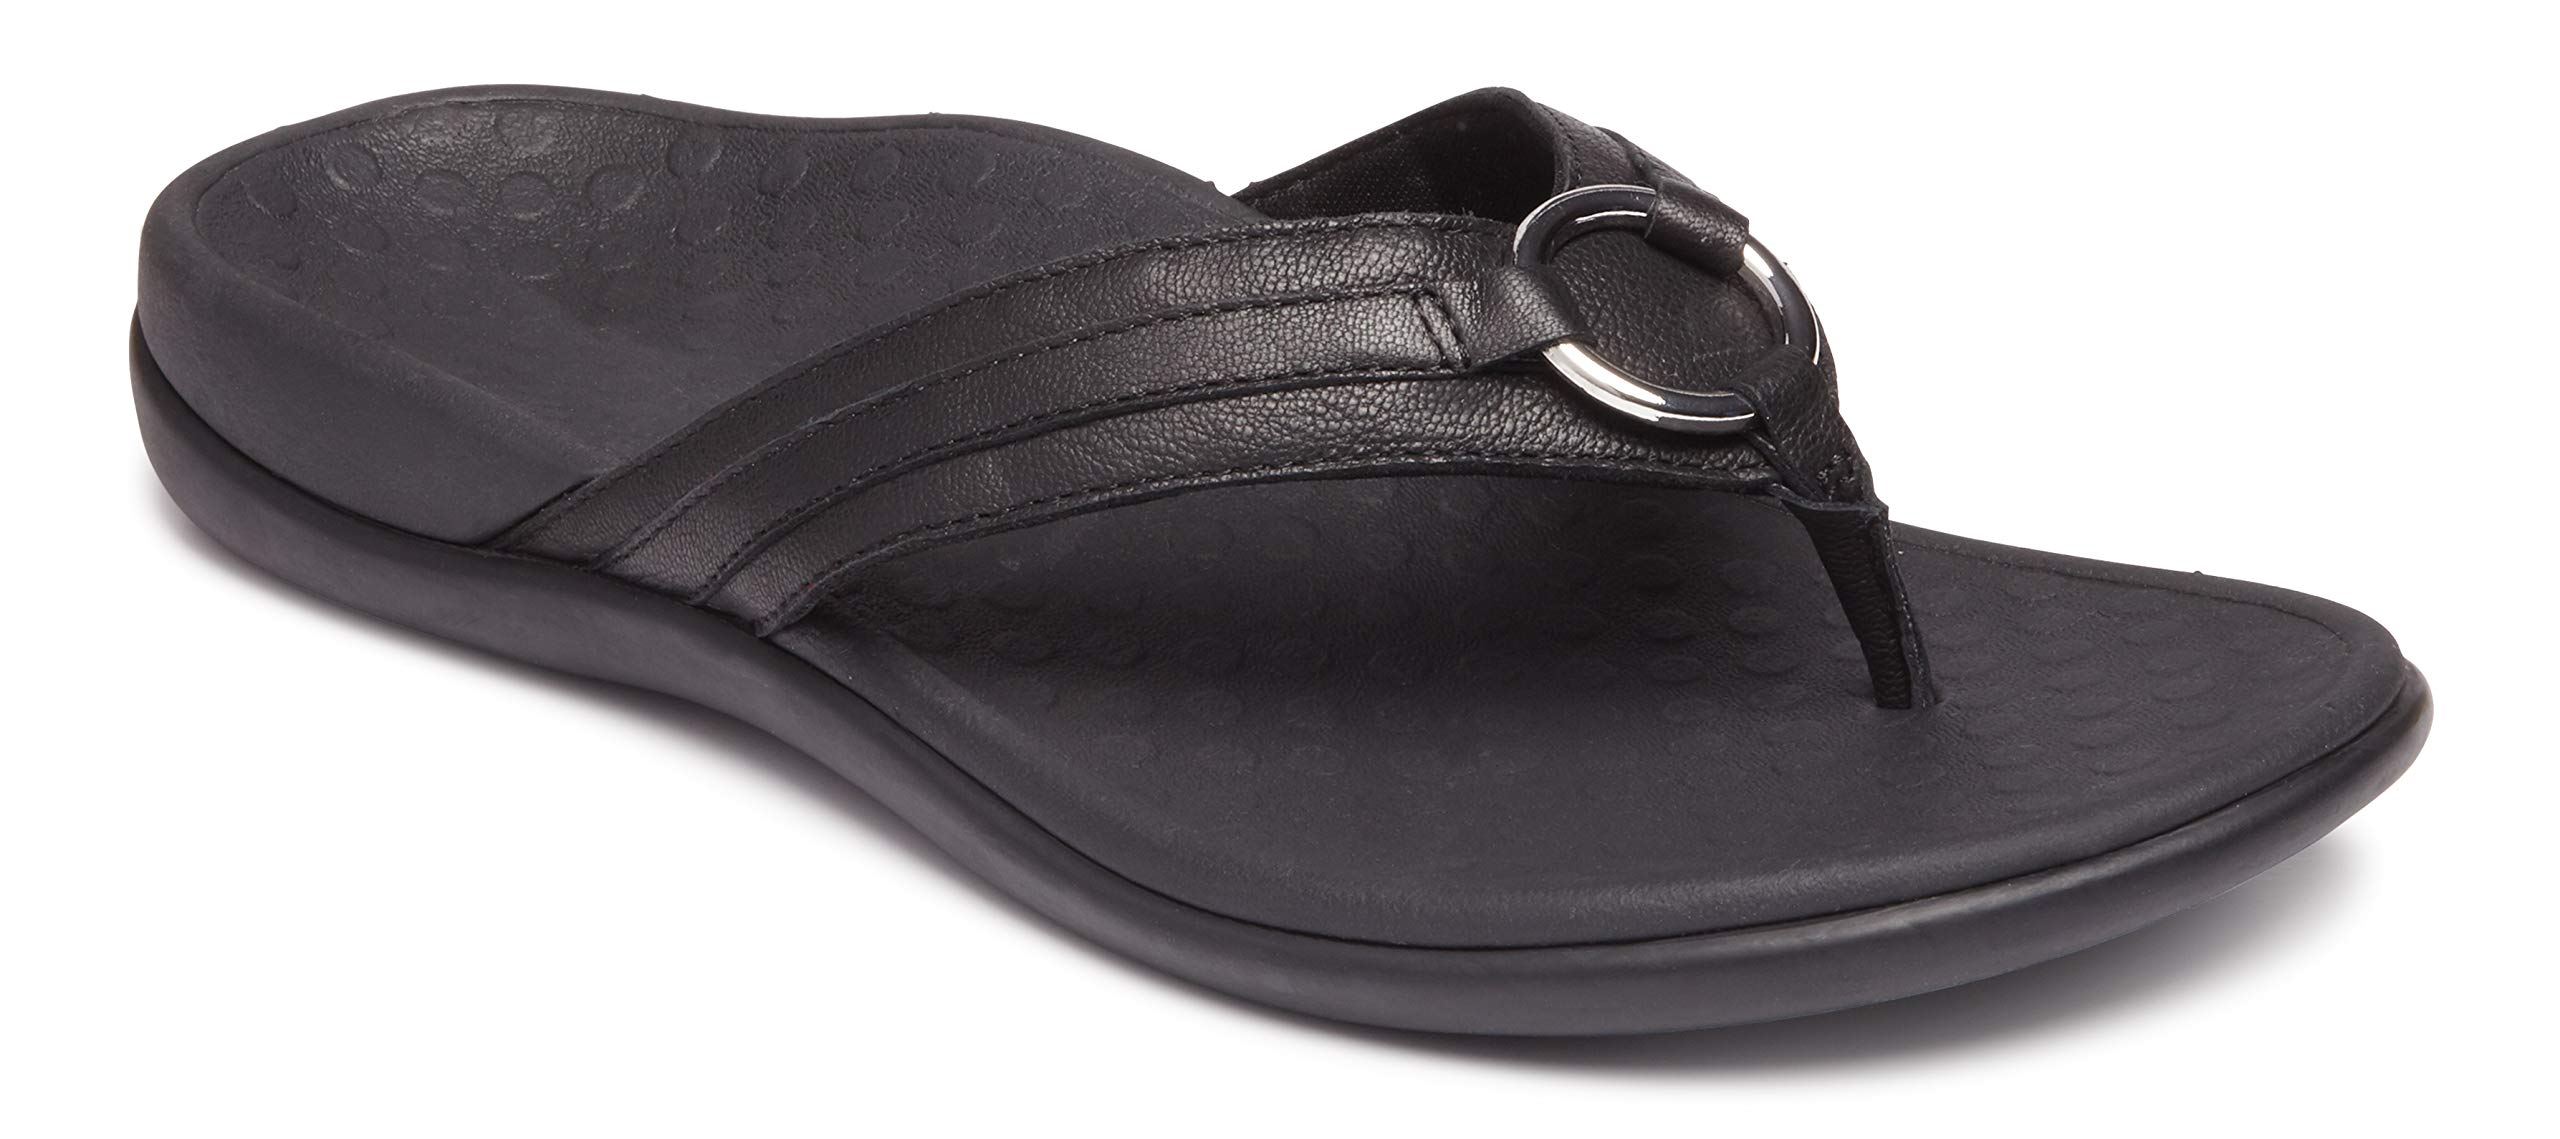 Vionic Women's Tide Aloe Toe-Post Sandal - Ladies Flip- Flop with Concealed Orthotic Arch Support Black Leather 8 M US by Vionic